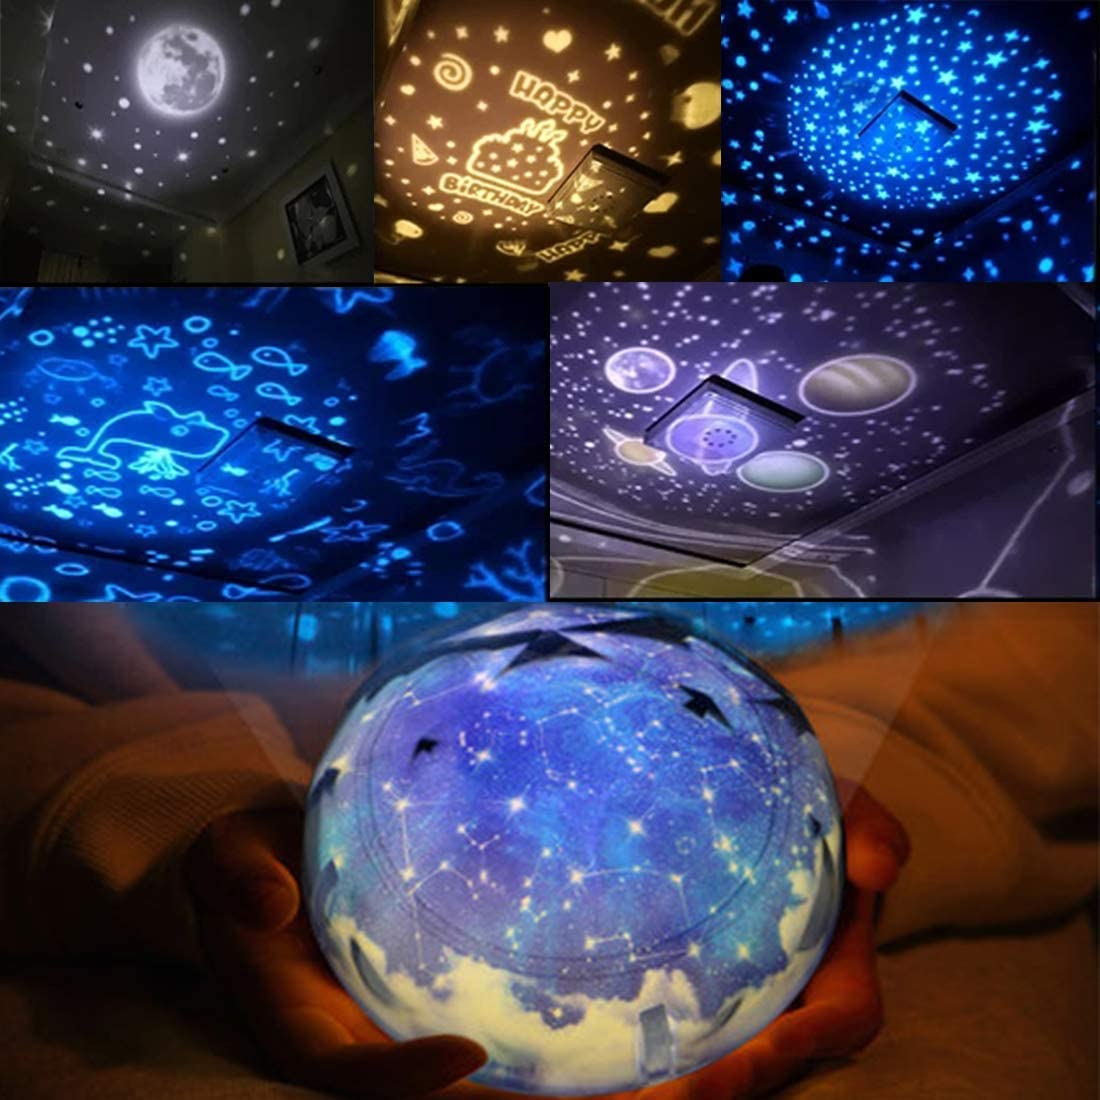 Star Night Lights Gifts for Kids Age 3-10, Constellation Stars Projector Lamp Novelty Nursery Night Light for Boys Girls Bedroom Kids' Room Decor Lamps 3 4 5 6-10 Year Old Boy Girl Toy Mother Day Gift